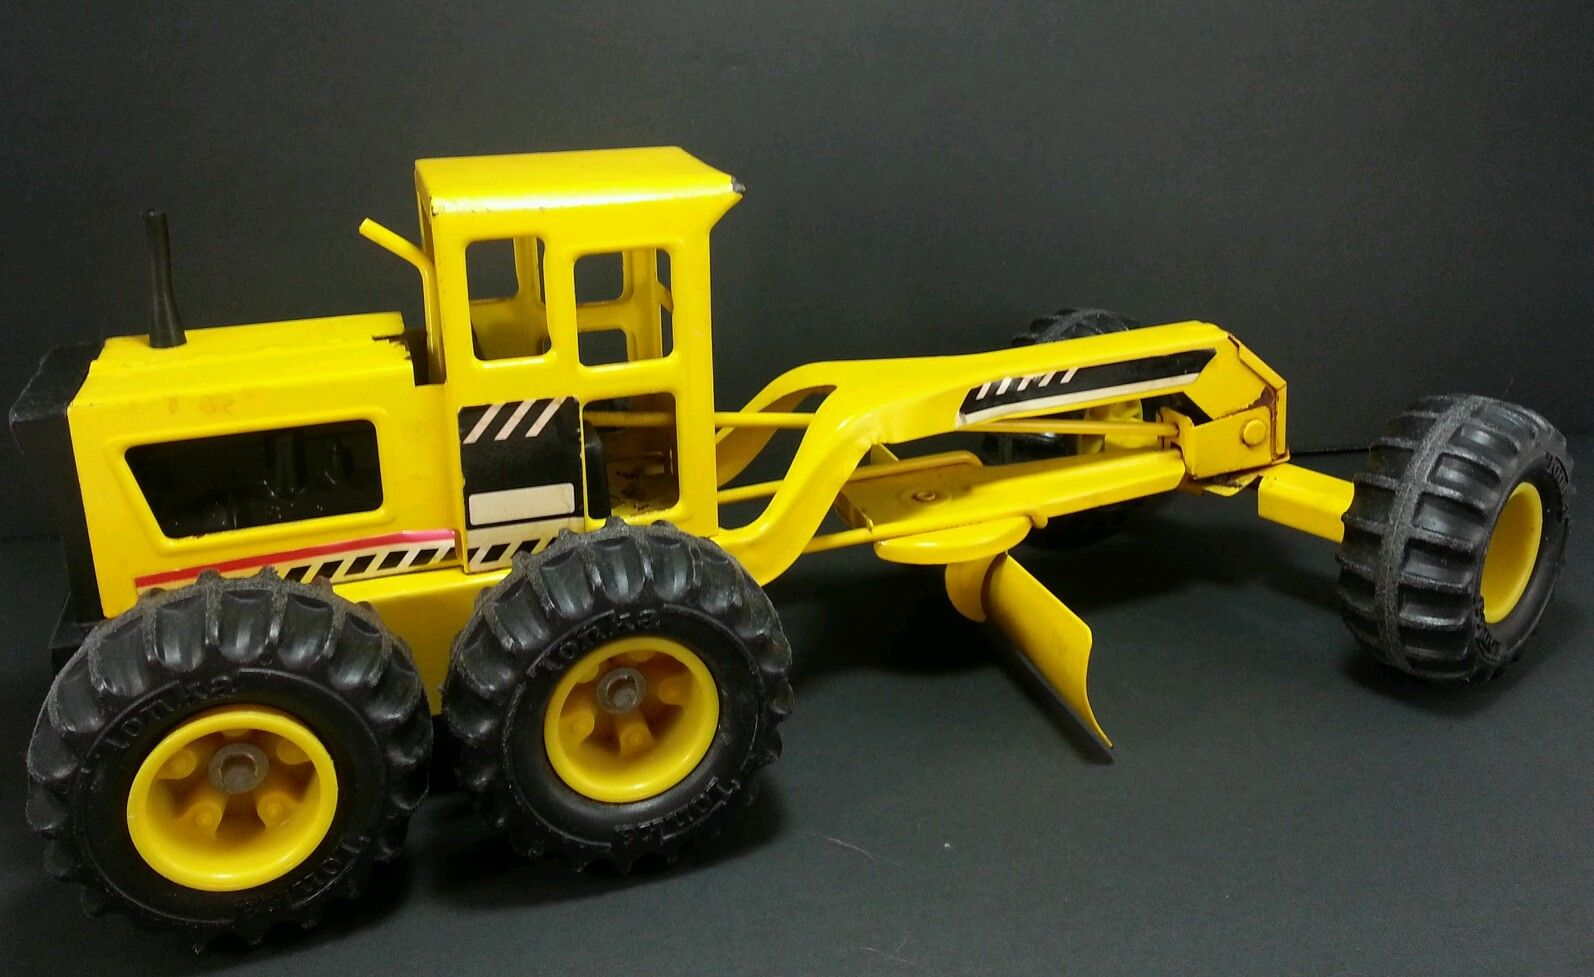 Toy Construction Equipment : My little pony thrift store flipping